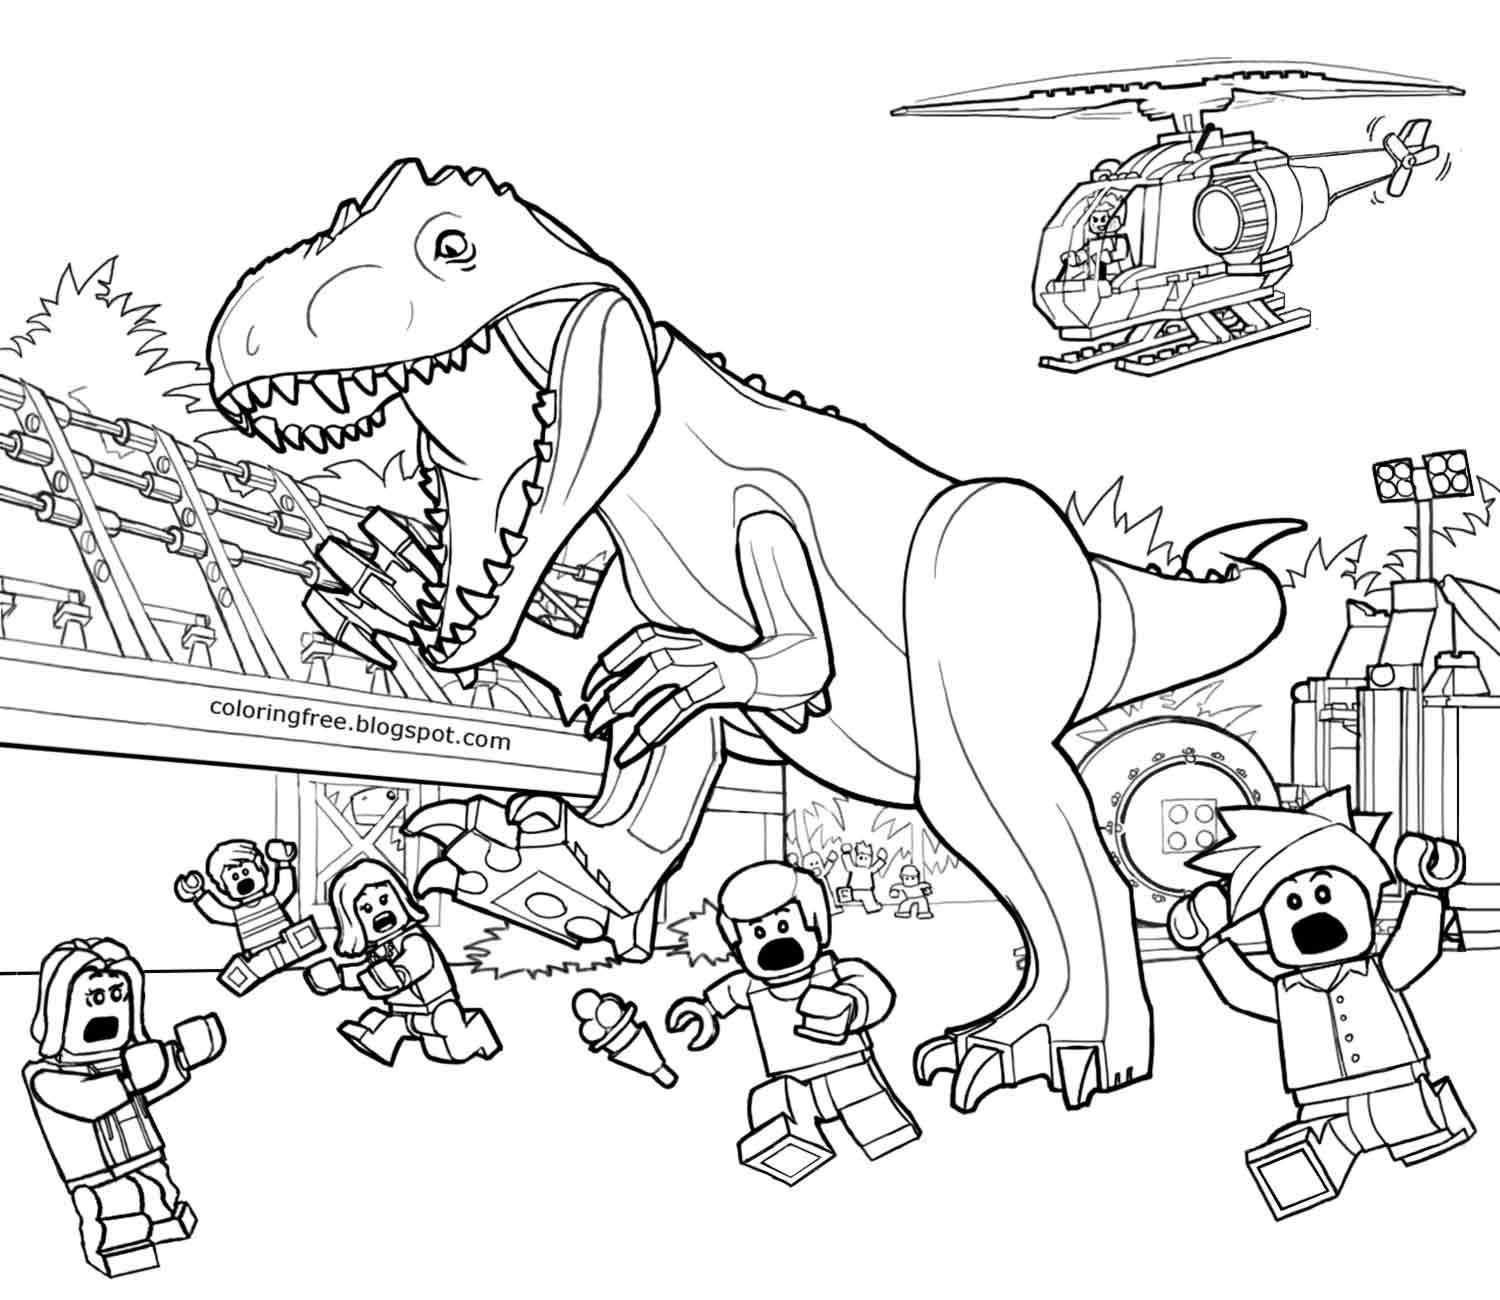 Dinosaur Landscape Coloring Pages | Yep, I'm An Early Ed